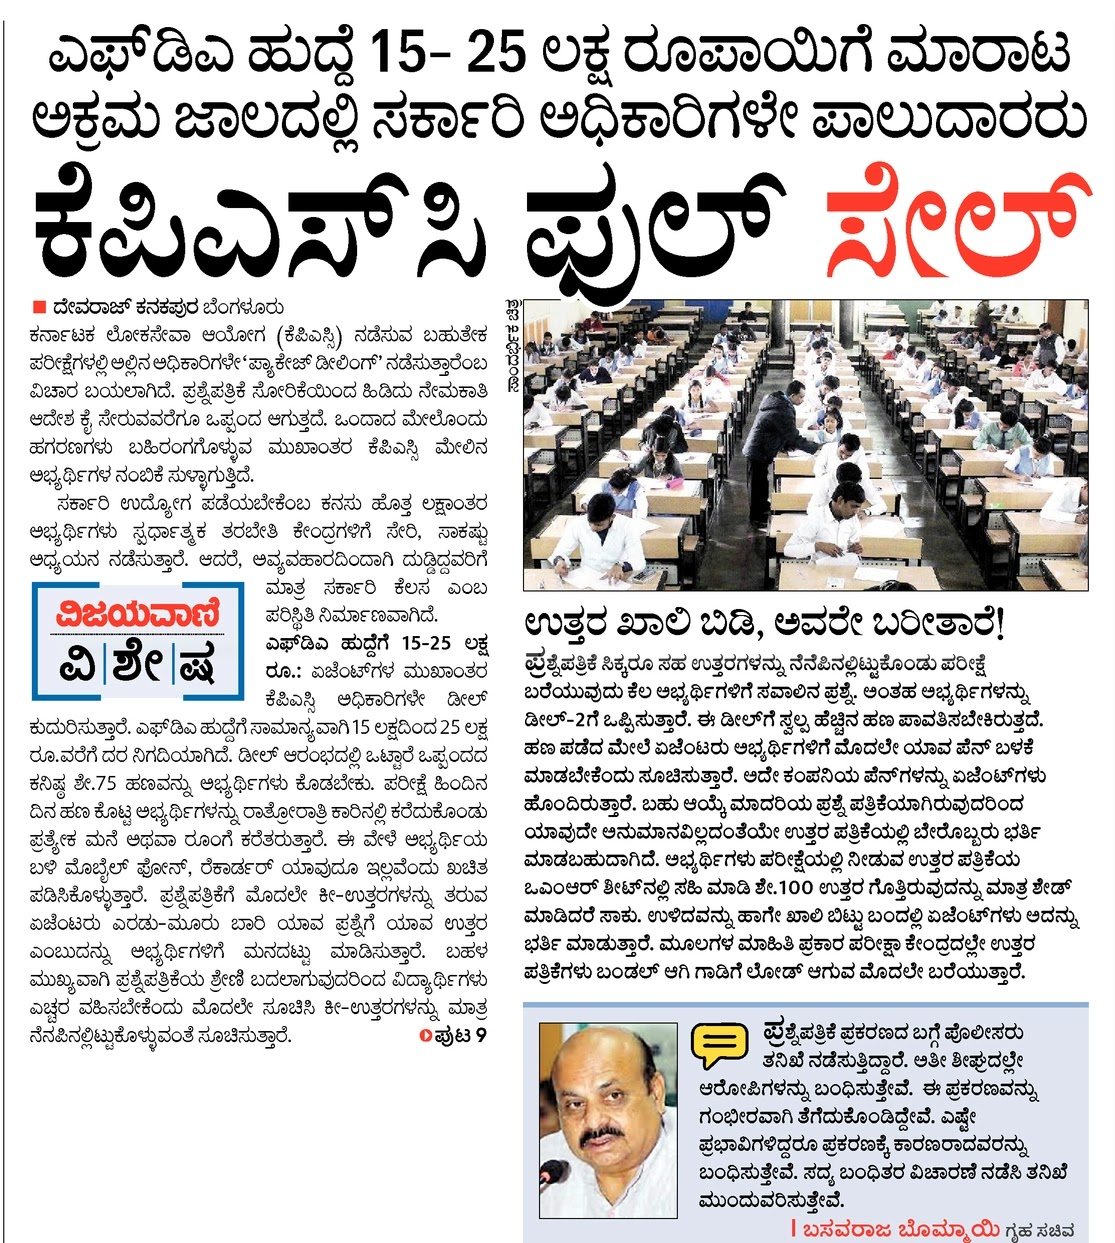 25-01-2021 Monday educational information and others news and today news paper,s